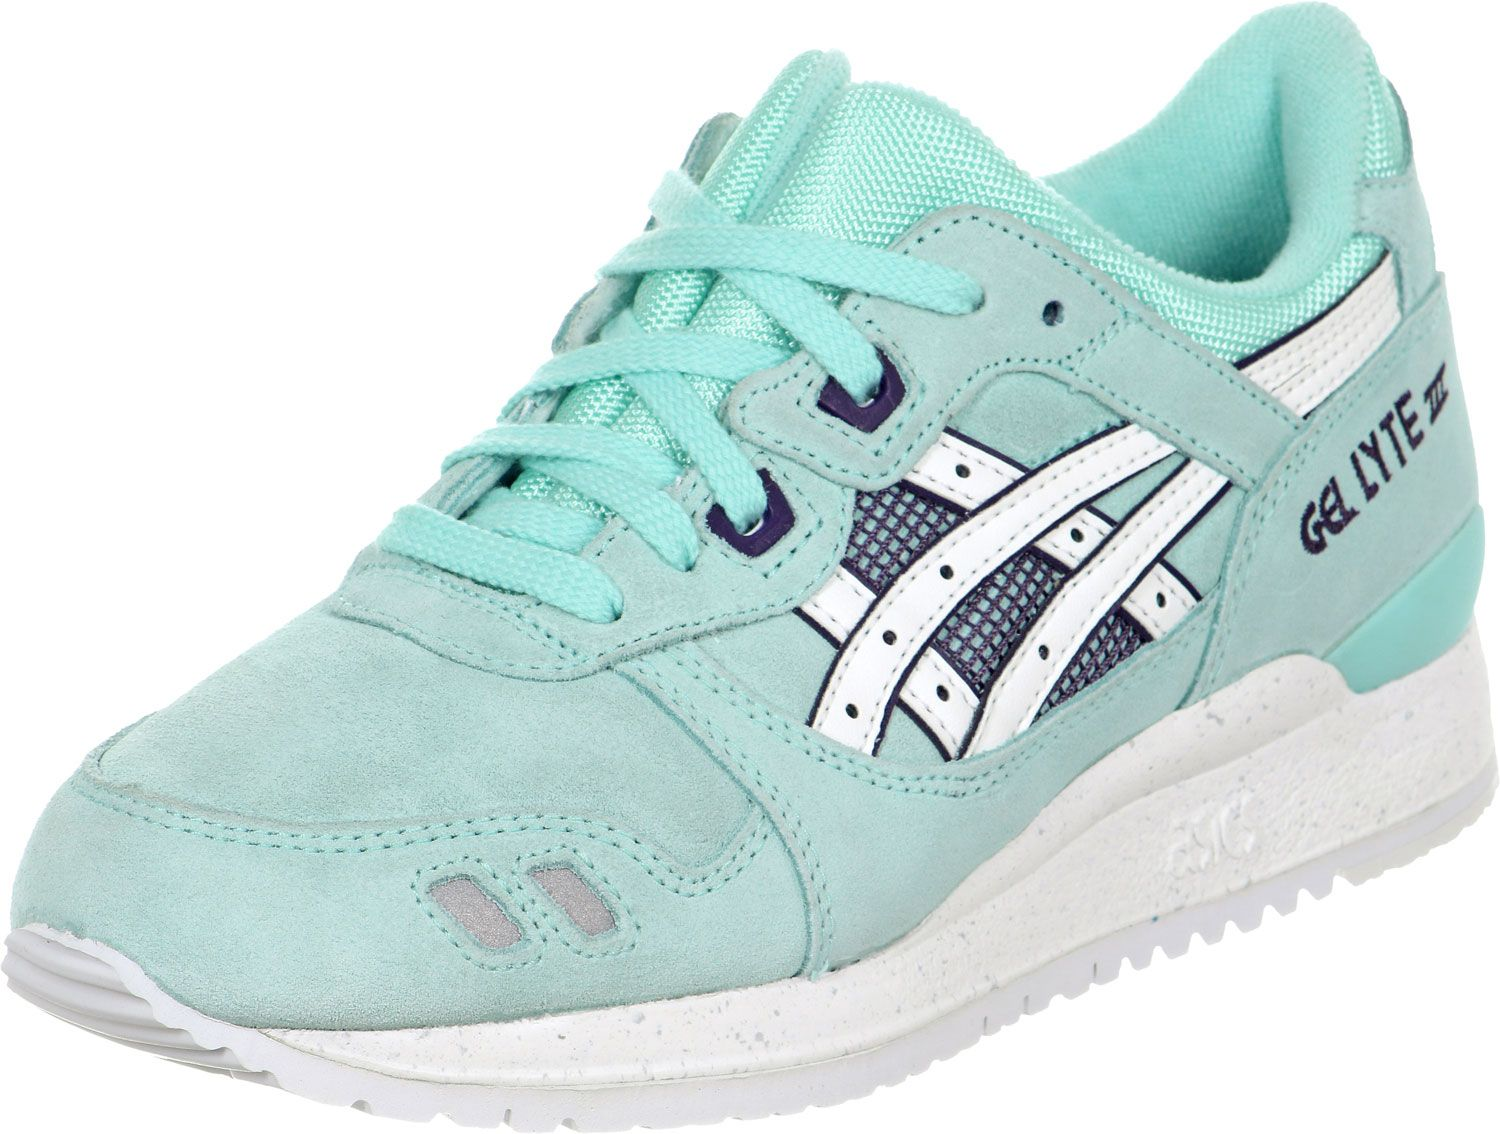 Iii Lyte Asics Turquoise Gel Shoes Moins Femme Chaussures Cher TpzWqII